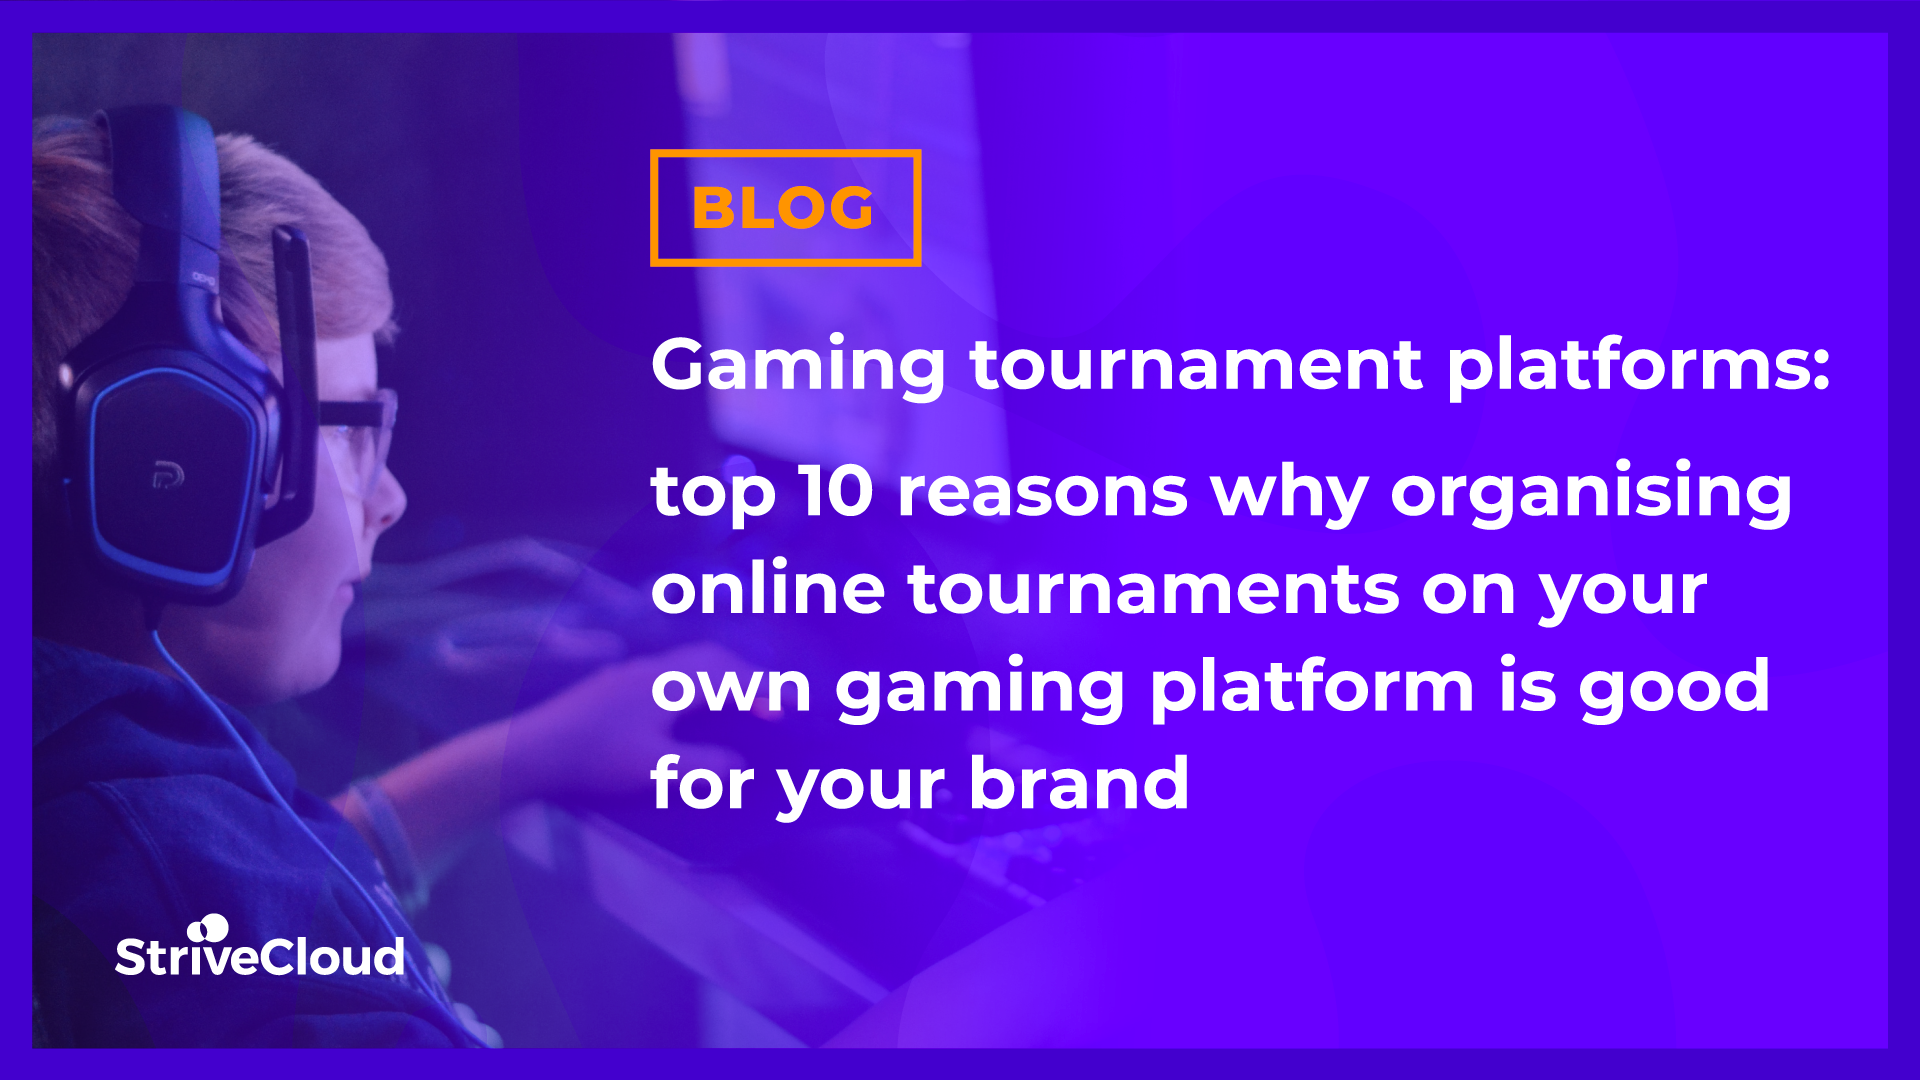 Gaming tournament platforms: top 10 reasons why organising online tournaments on your own gaming platform is good for your brand